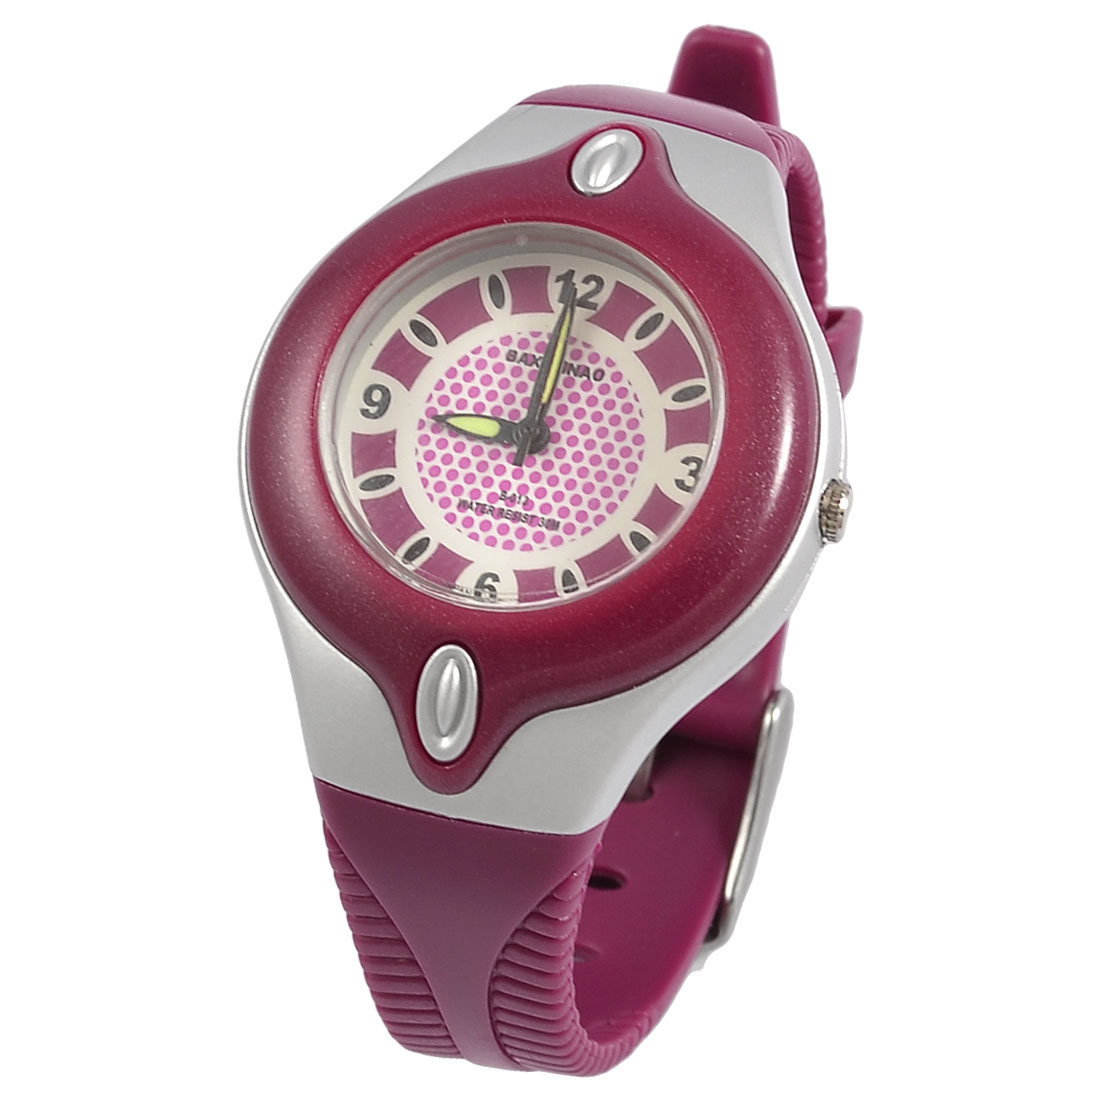 Round Dial Fuchsia Plastic Watchband Sports Wrist Watch for Children